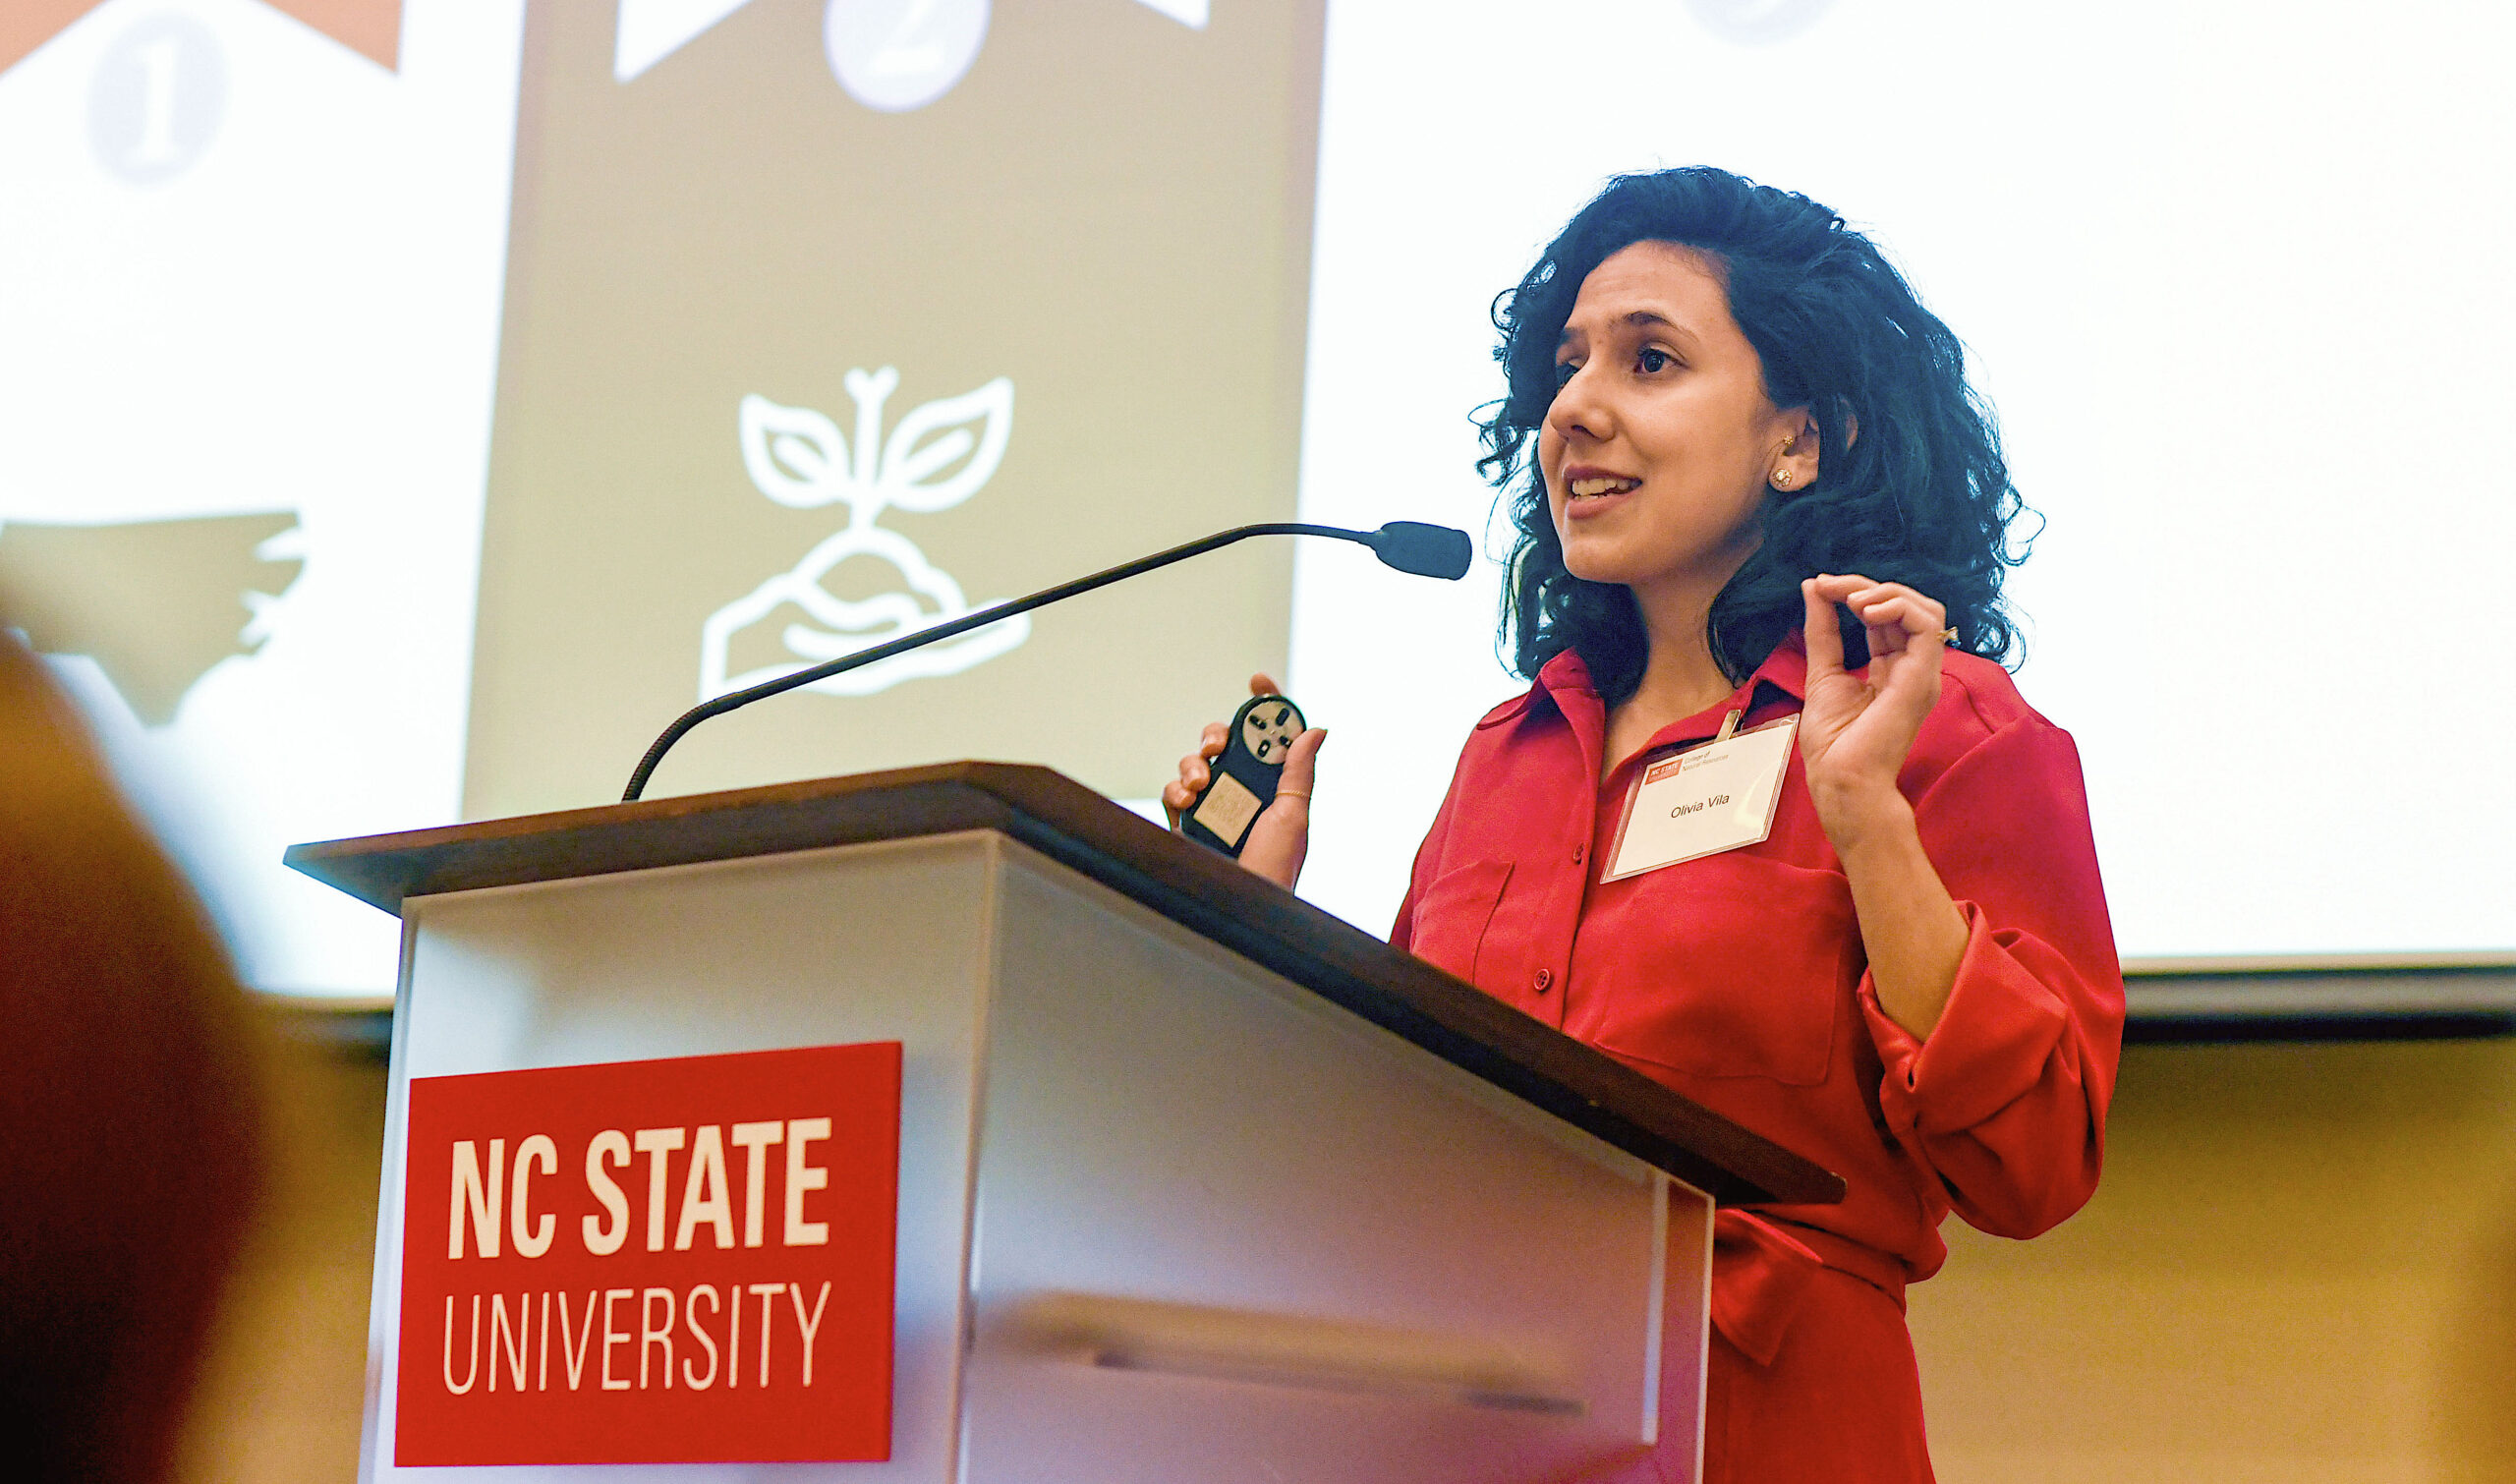 Olivia Vilá, who previously won a joint fellowship with North Carolina Sea Grant and the NC Water Resources Research Institute, is one of four finalists from N.C. in the 2022 class of Knauss Fellows.